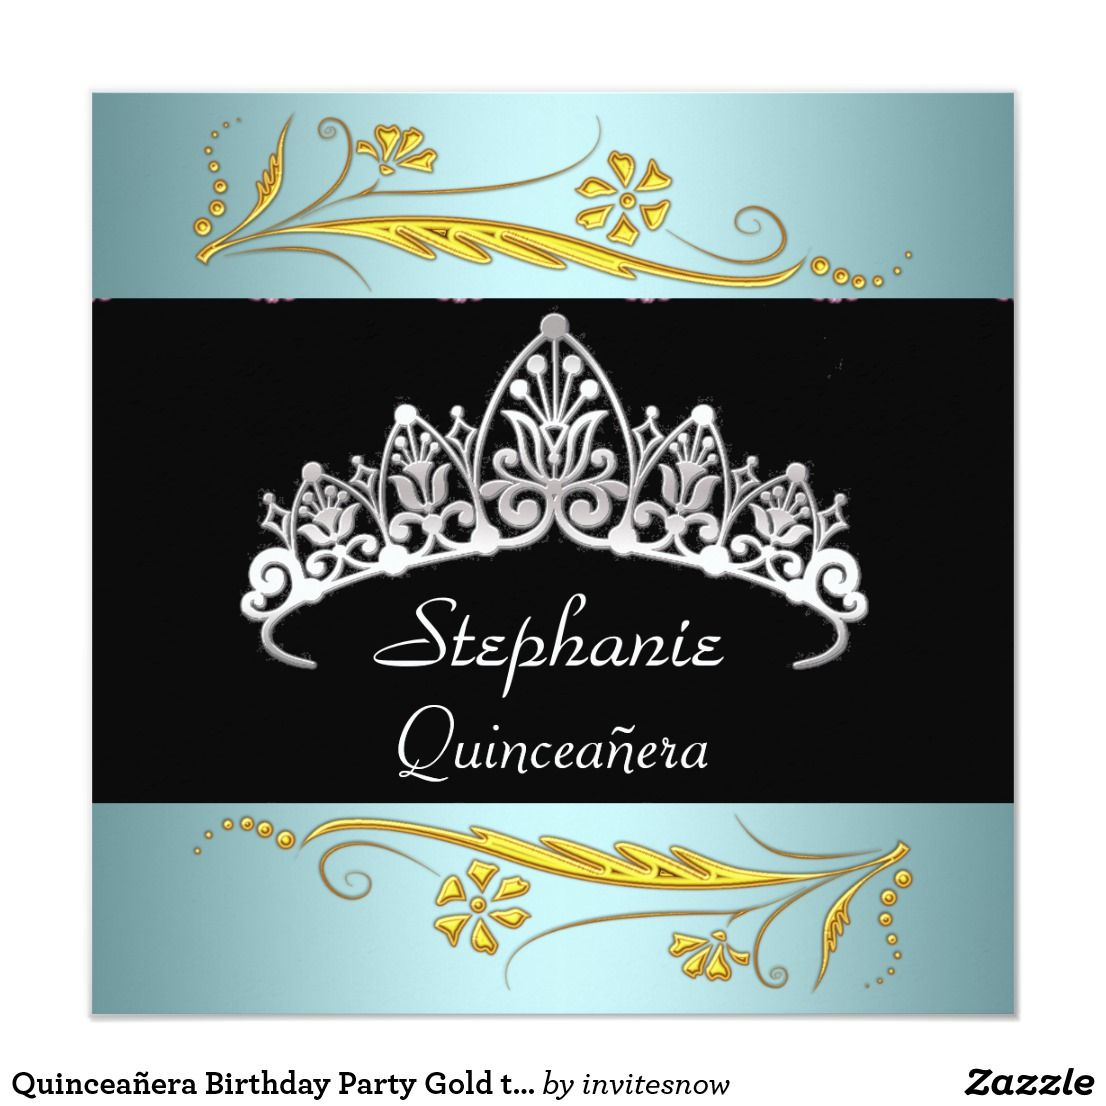 Quinceañera Birthday Party Gold teal Jewels Invitation